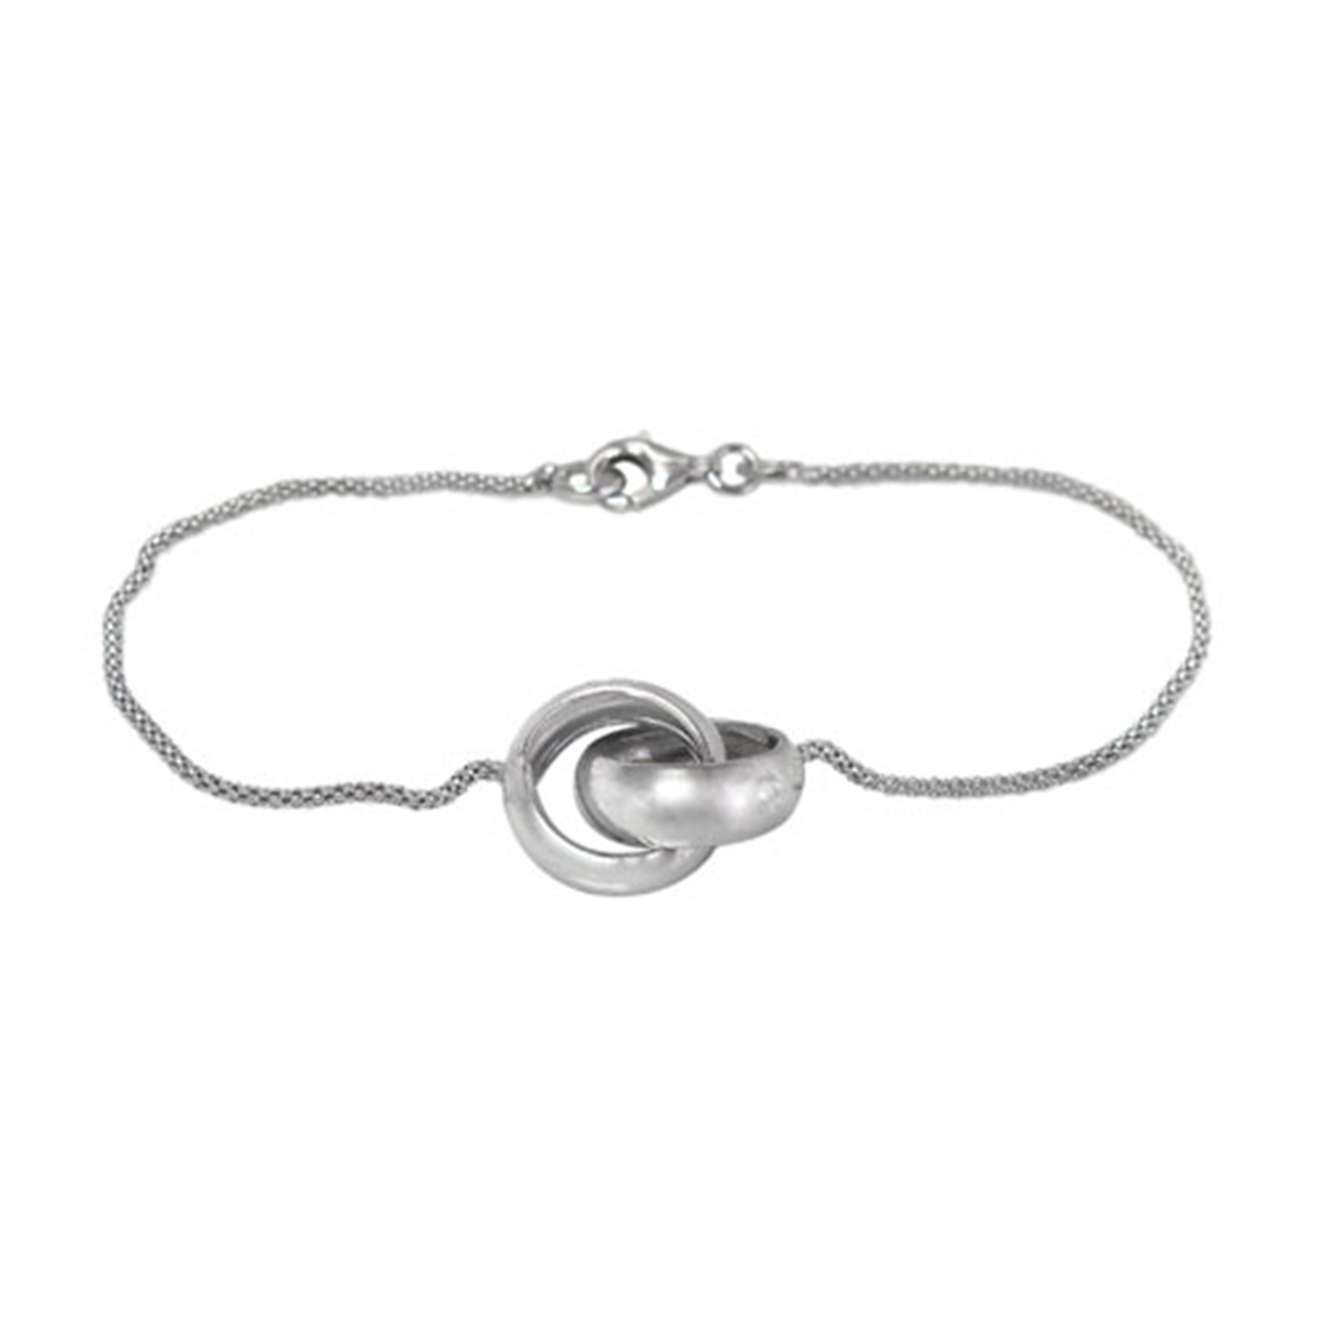 Ring Bracelet, Sterling Silver with Rhodium, 14mm ring, 8 inch